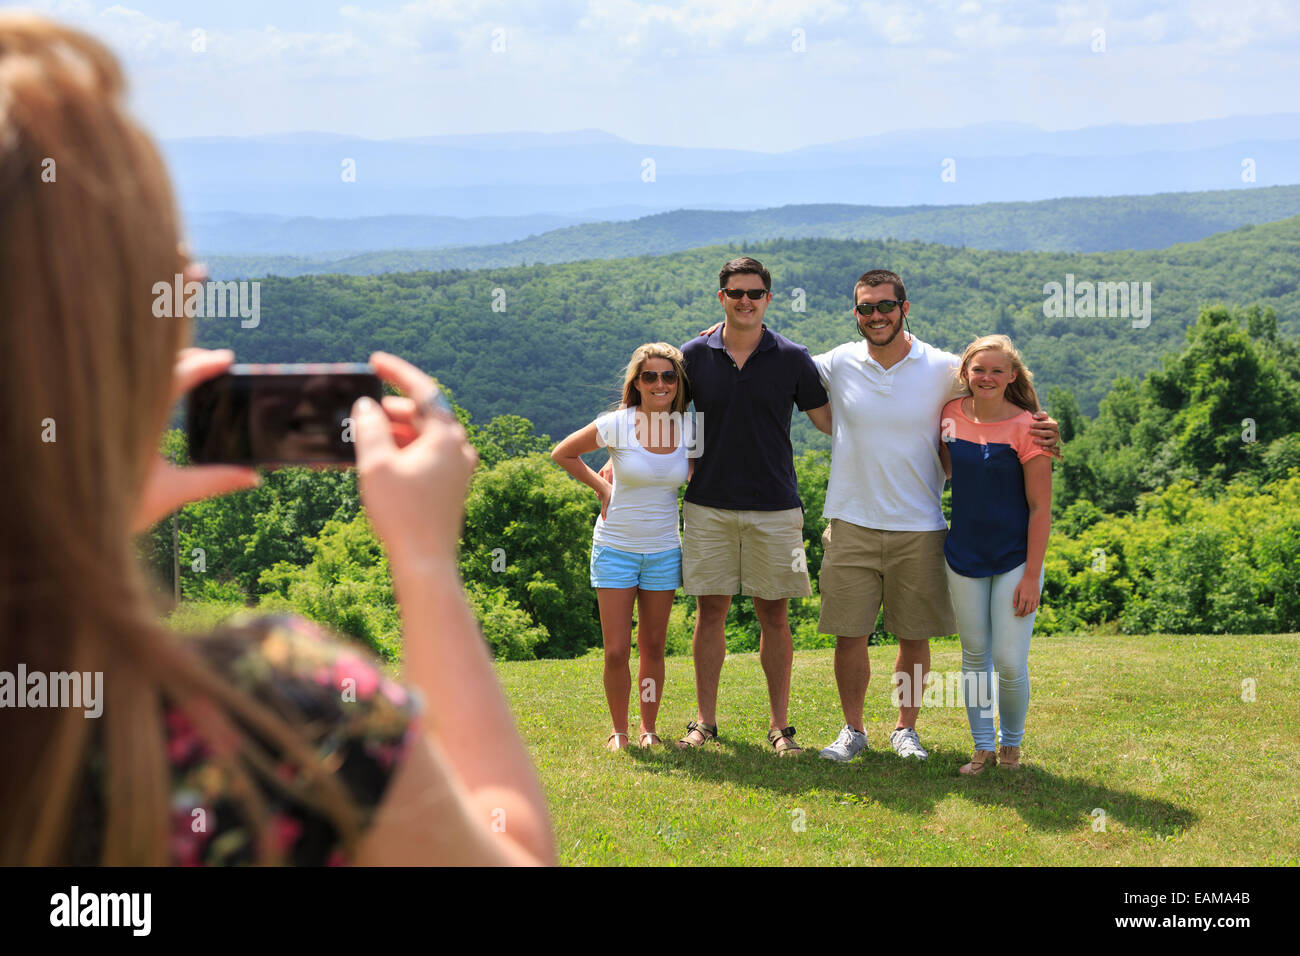 Friends at Dan Ingalls Overlook, Bath County, Virginia near Homestead Resort - Stock Image